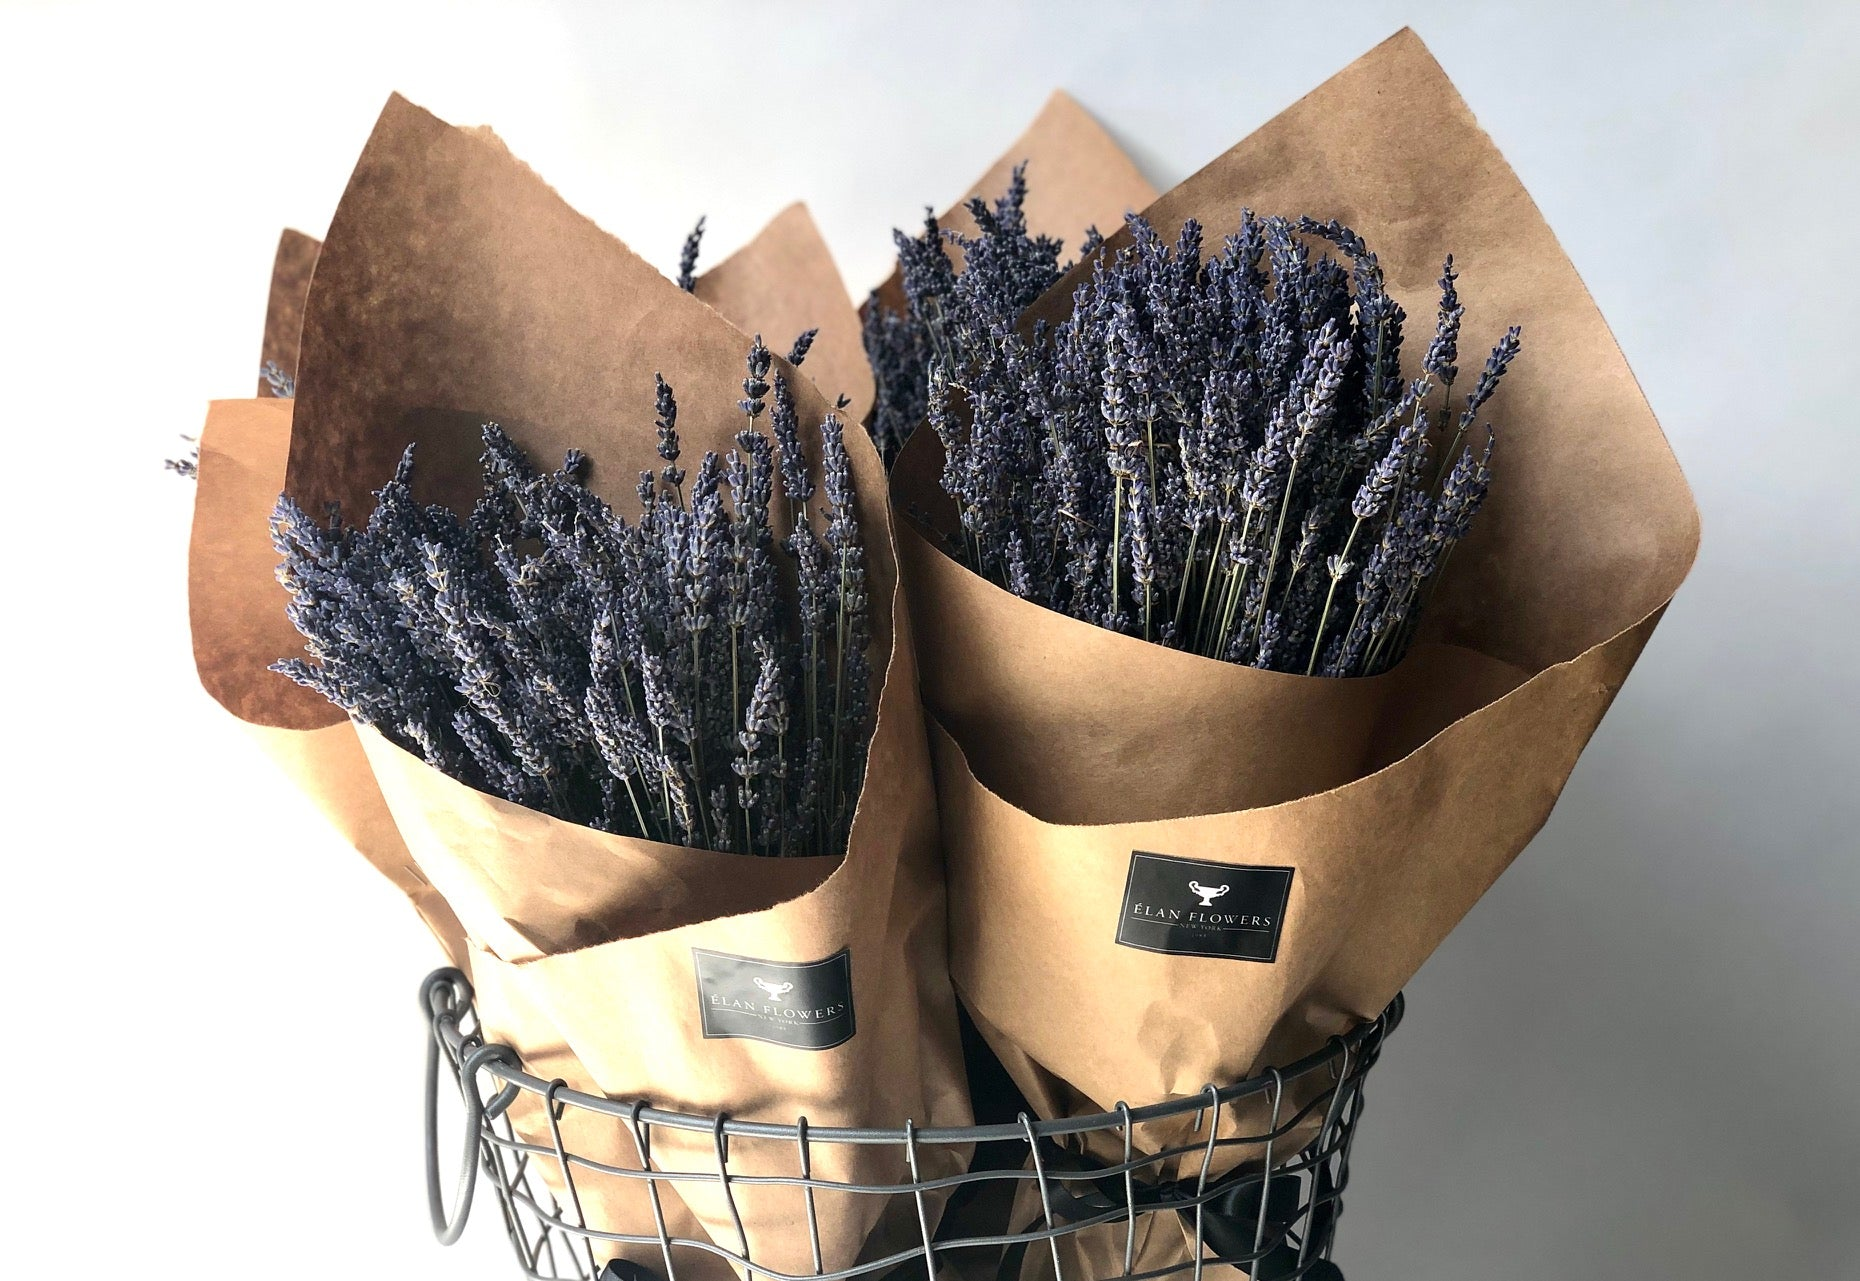 Dried Lavender from the South of France - Élan Flowers